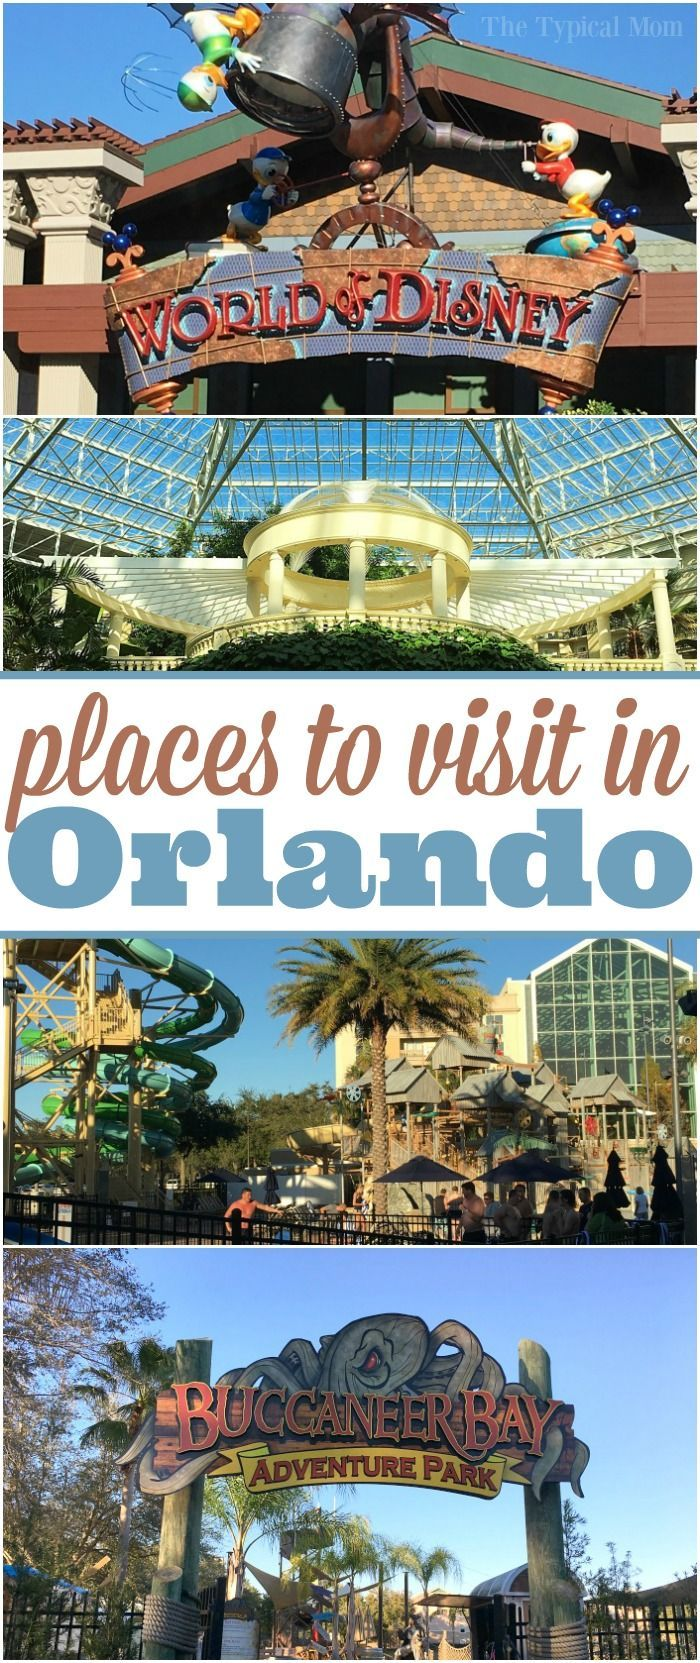 The best places to visit in Orlando Florida and where to go to get discount tickets to amusement parks there as well as cheap hotel stays. via @thetypicalmom